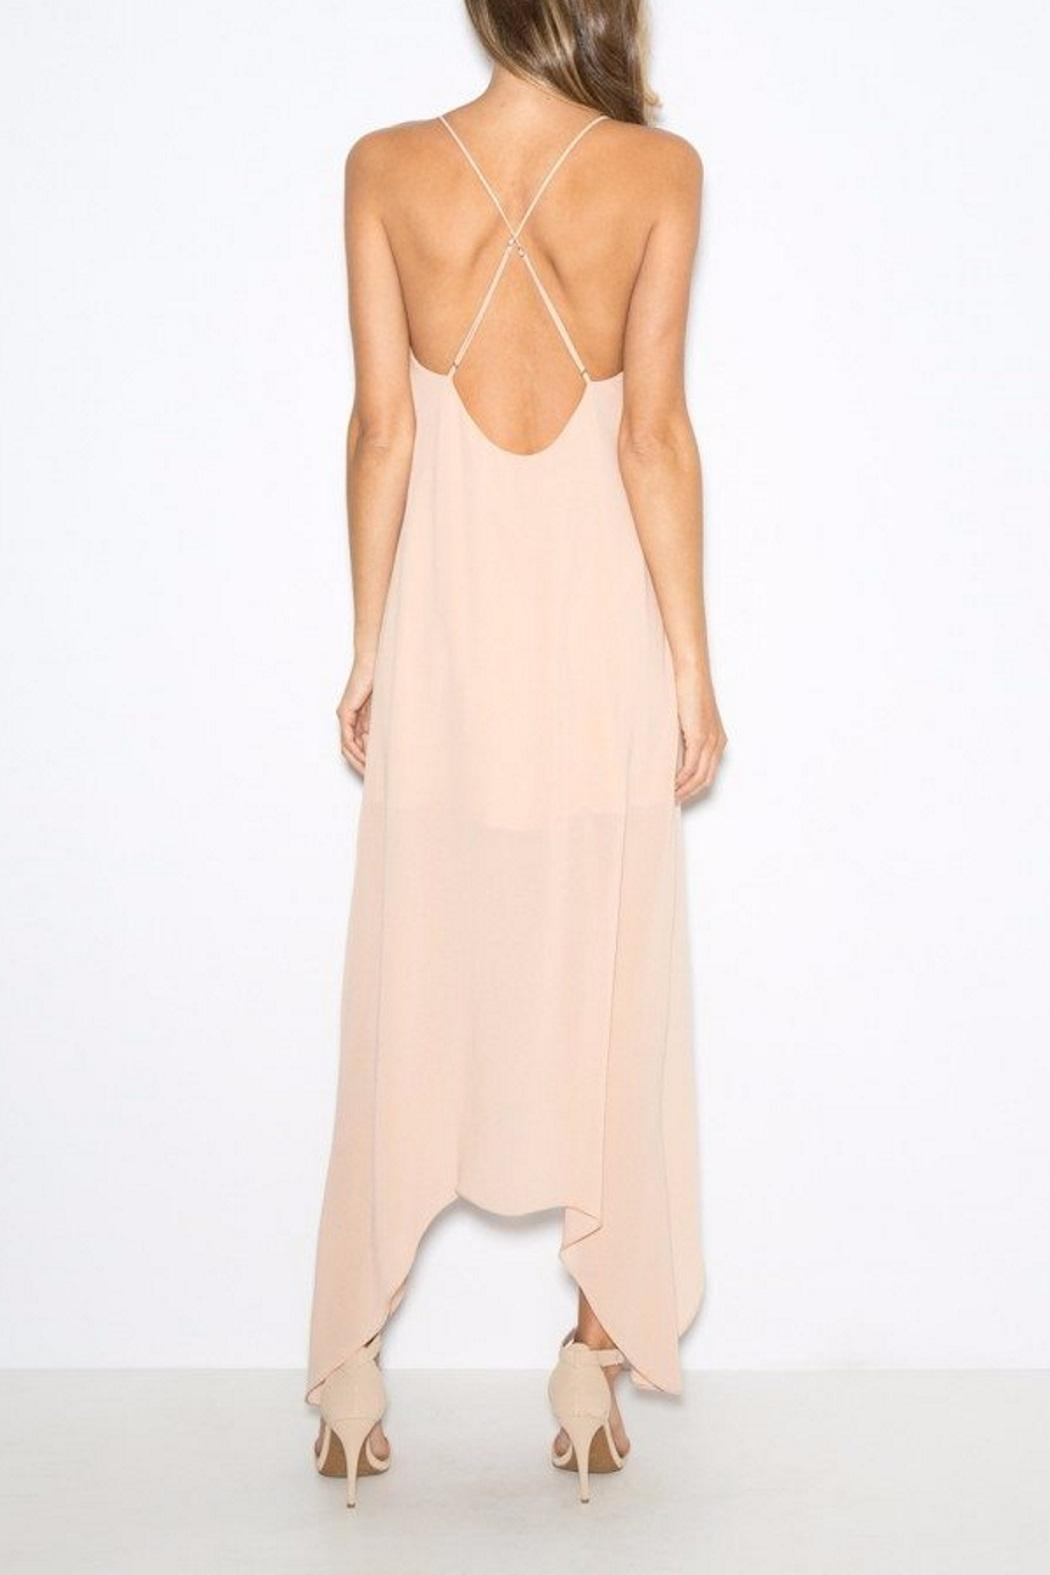 Rory Beca Castanets Gown - Back Cropped Image